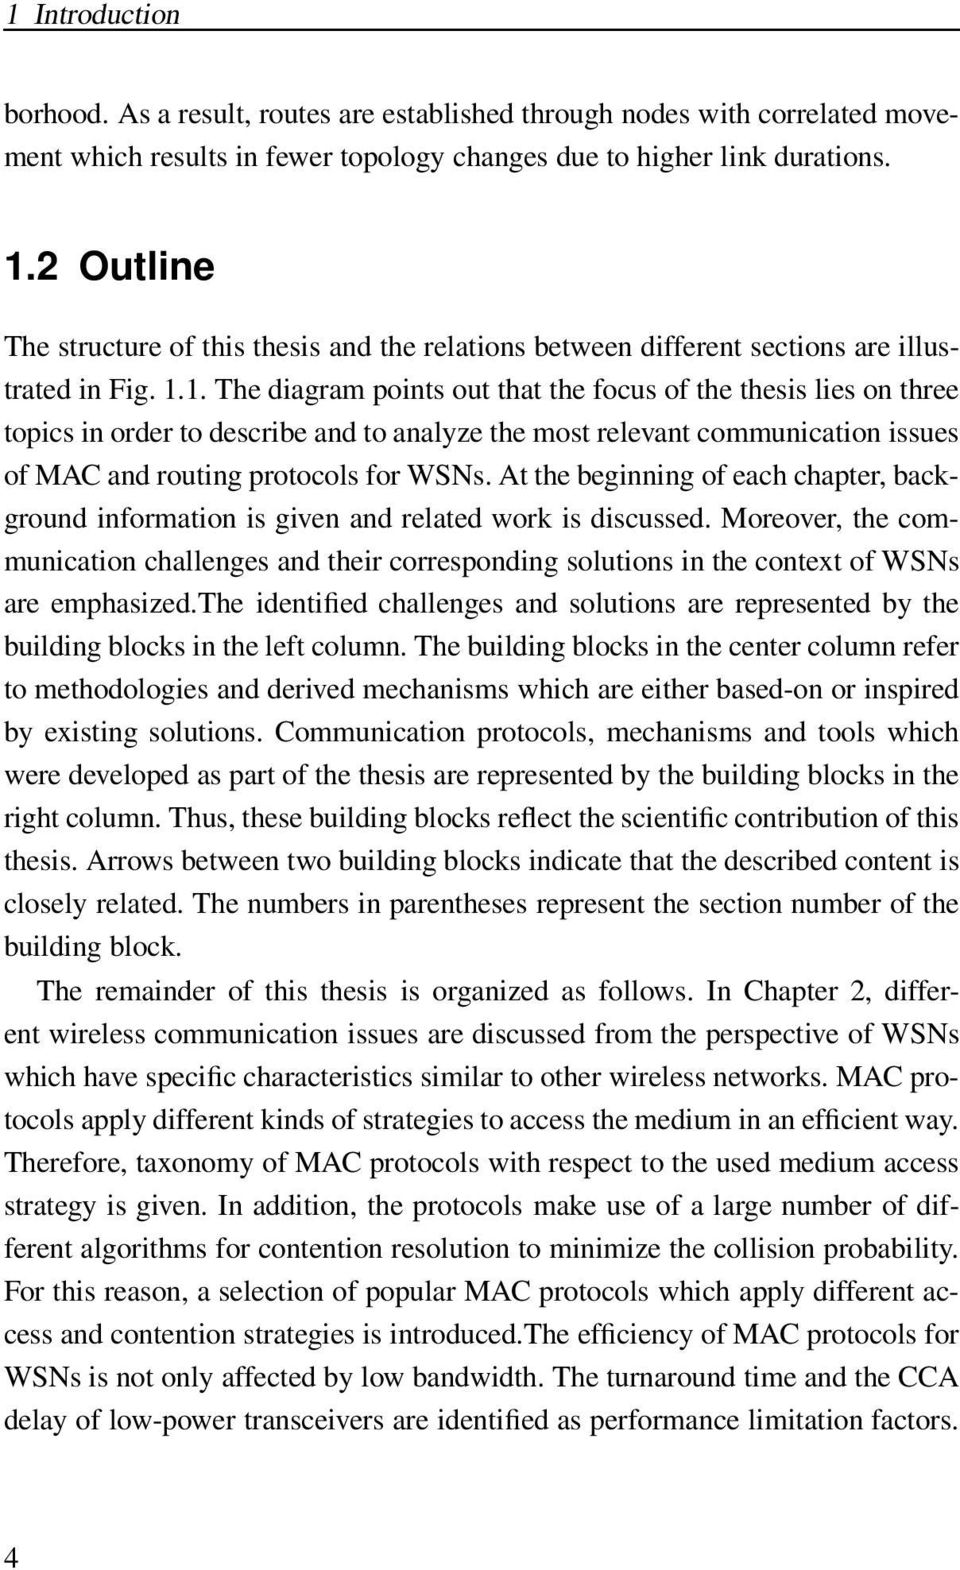 1. The diagram points out that the focus of the thesis lies on three topics in order to describe and to analyze the most relevant communication issues of MAC and routing protocols for WSNs.